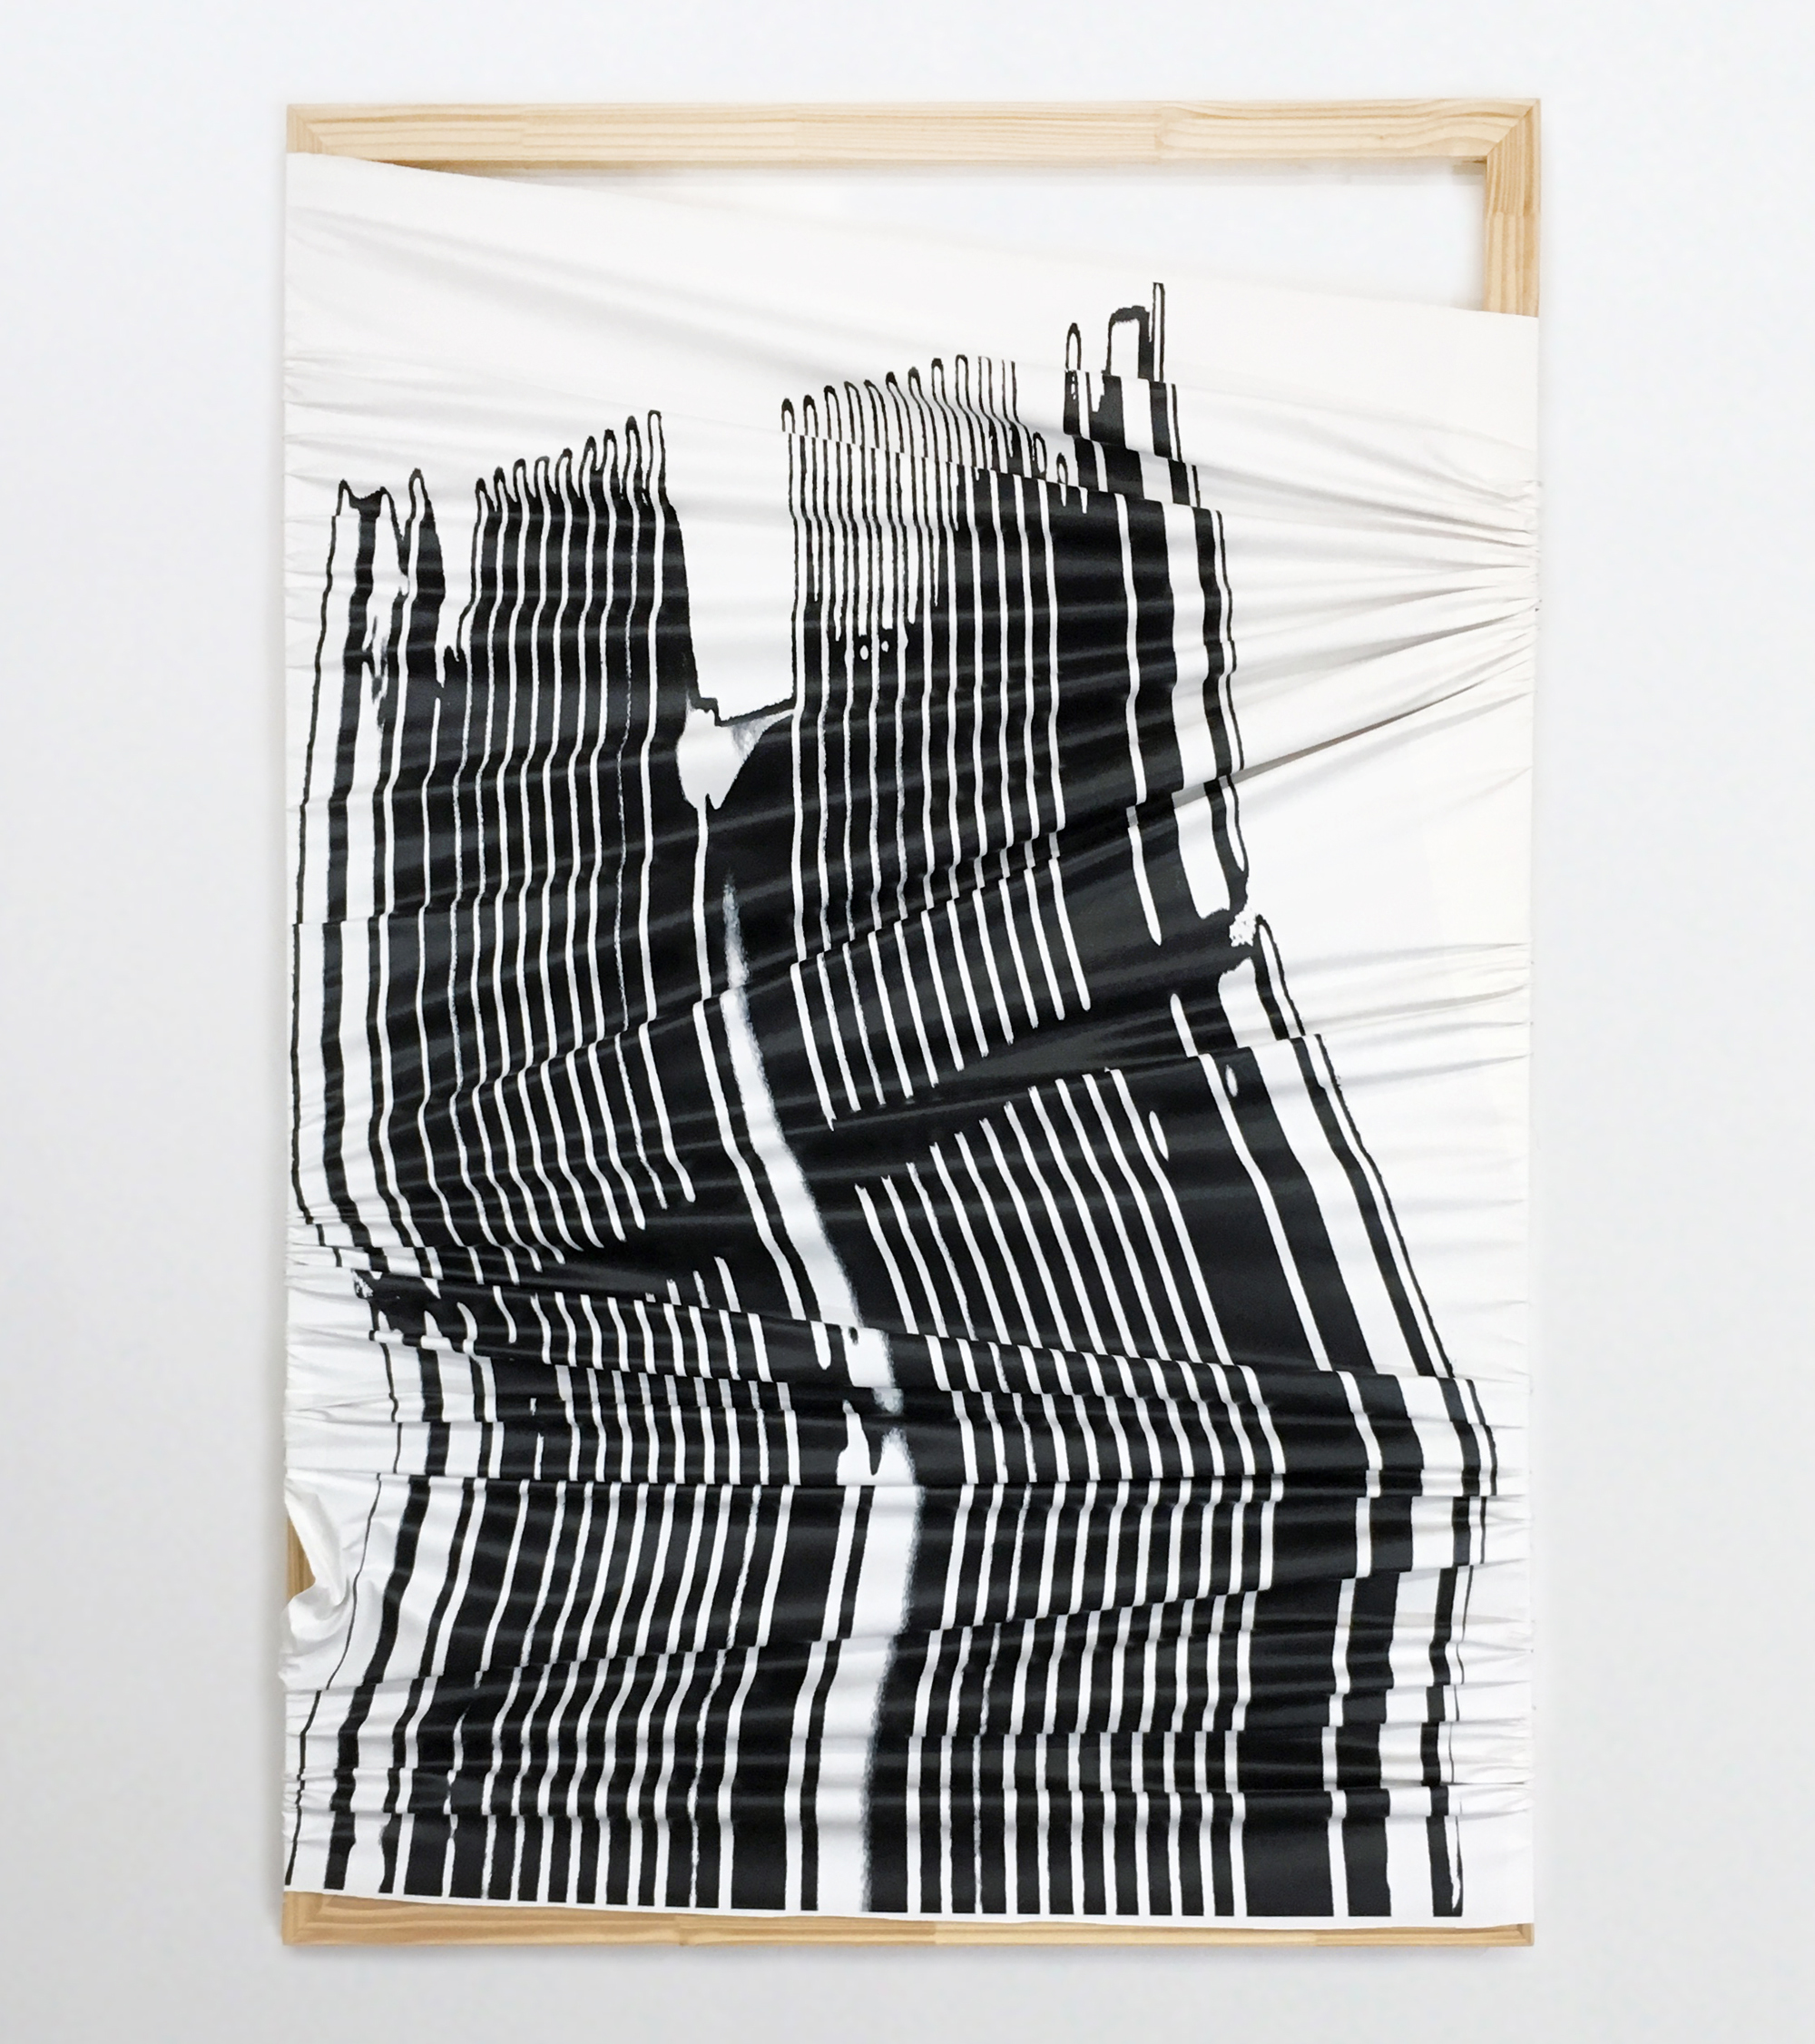 Duel Action , UV ink on canvas, 72 x 48 inches, 2016